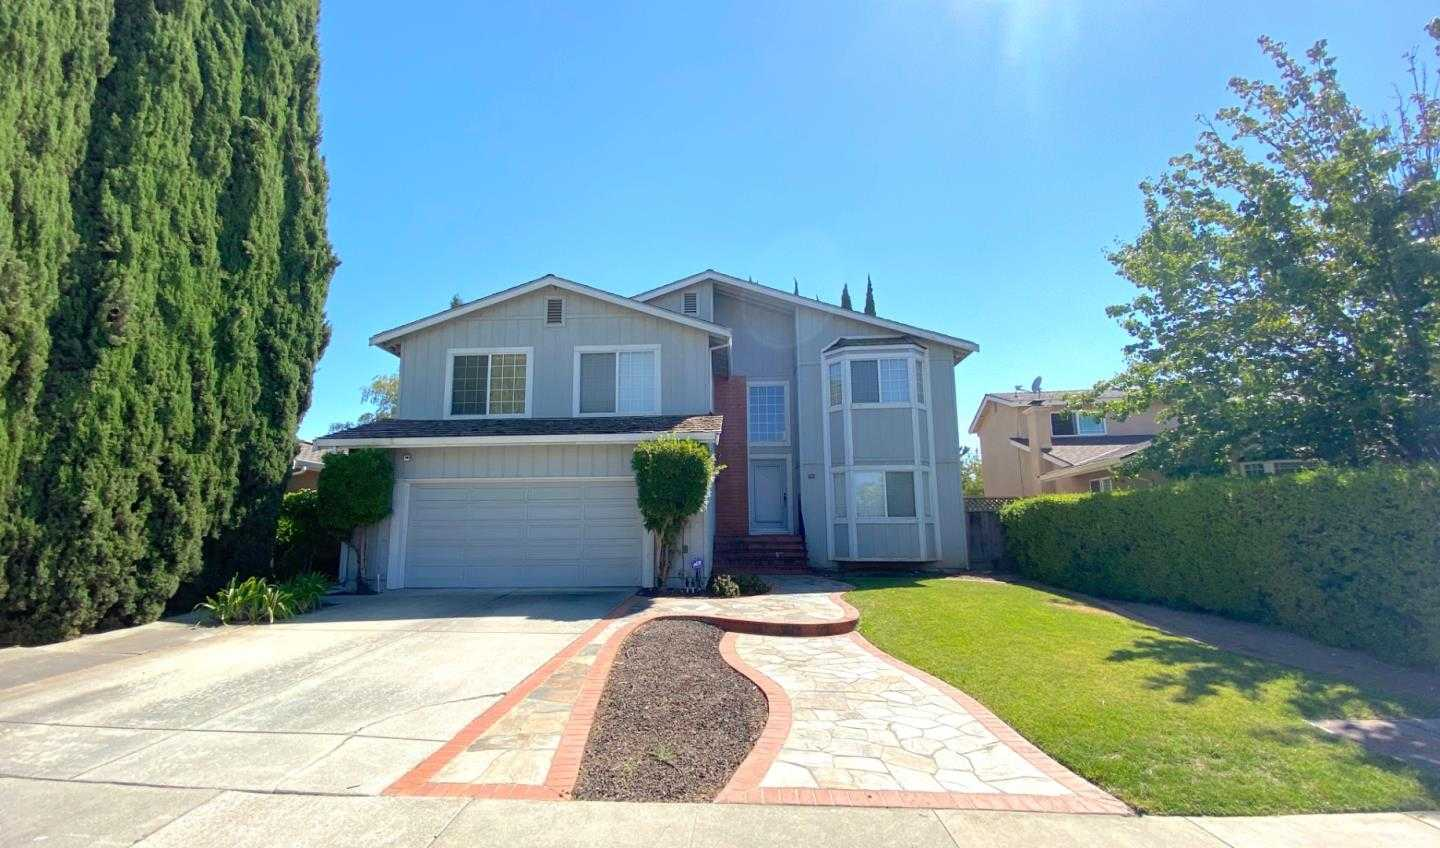 $1,050,000 - 5Br/3Ba -  for Sale in San Jose